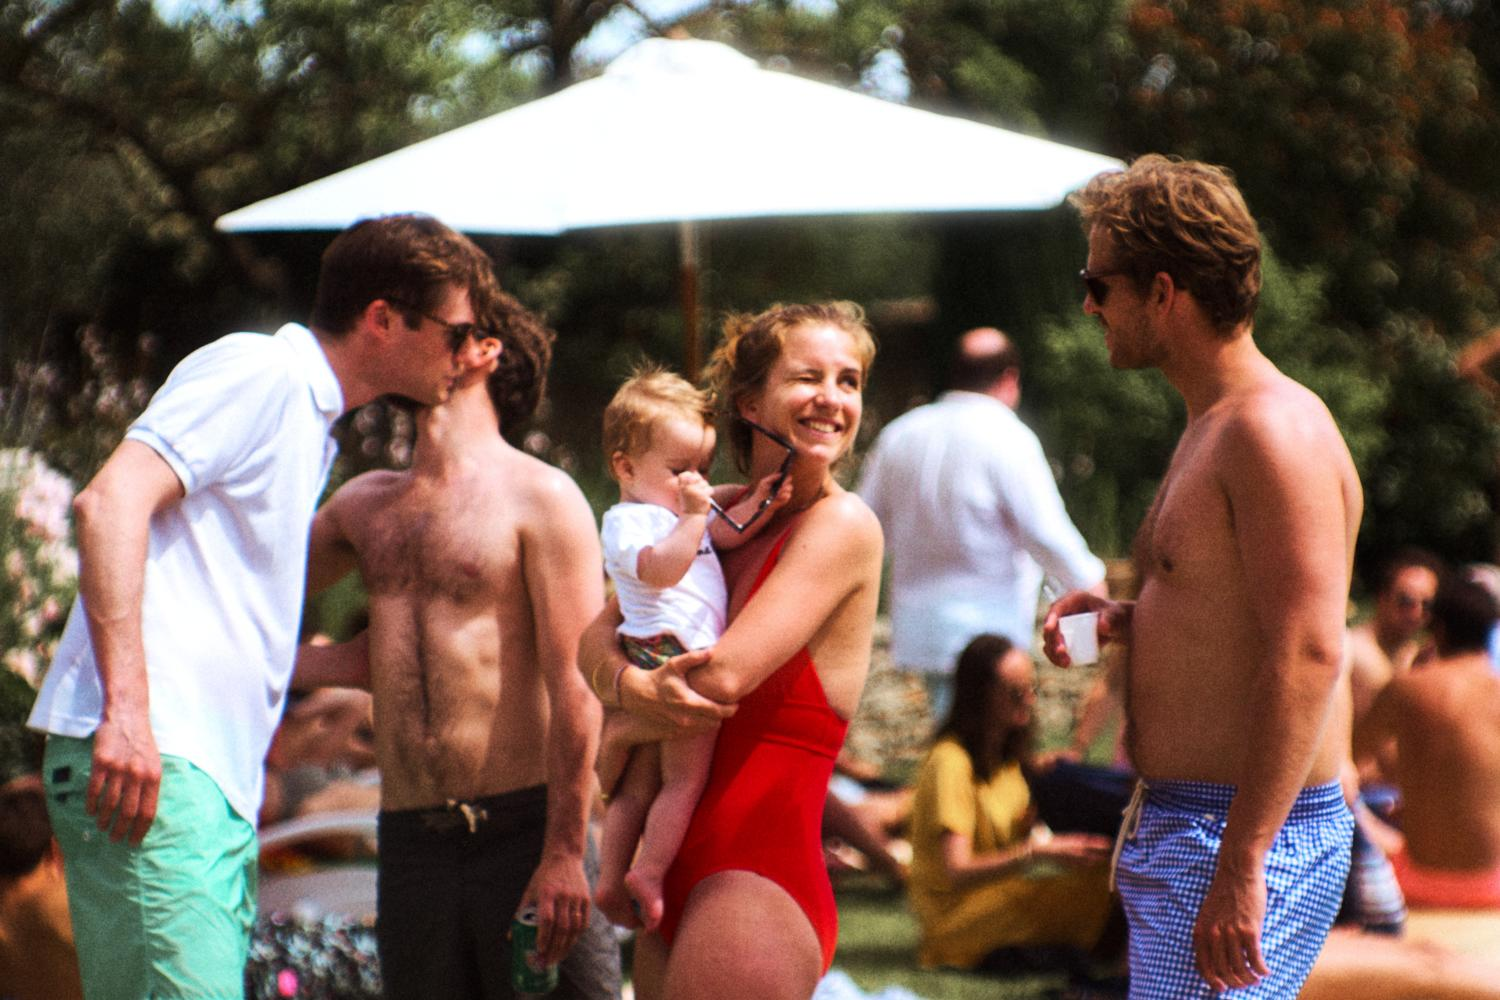 Wedding guests greet each other at a pool party in France